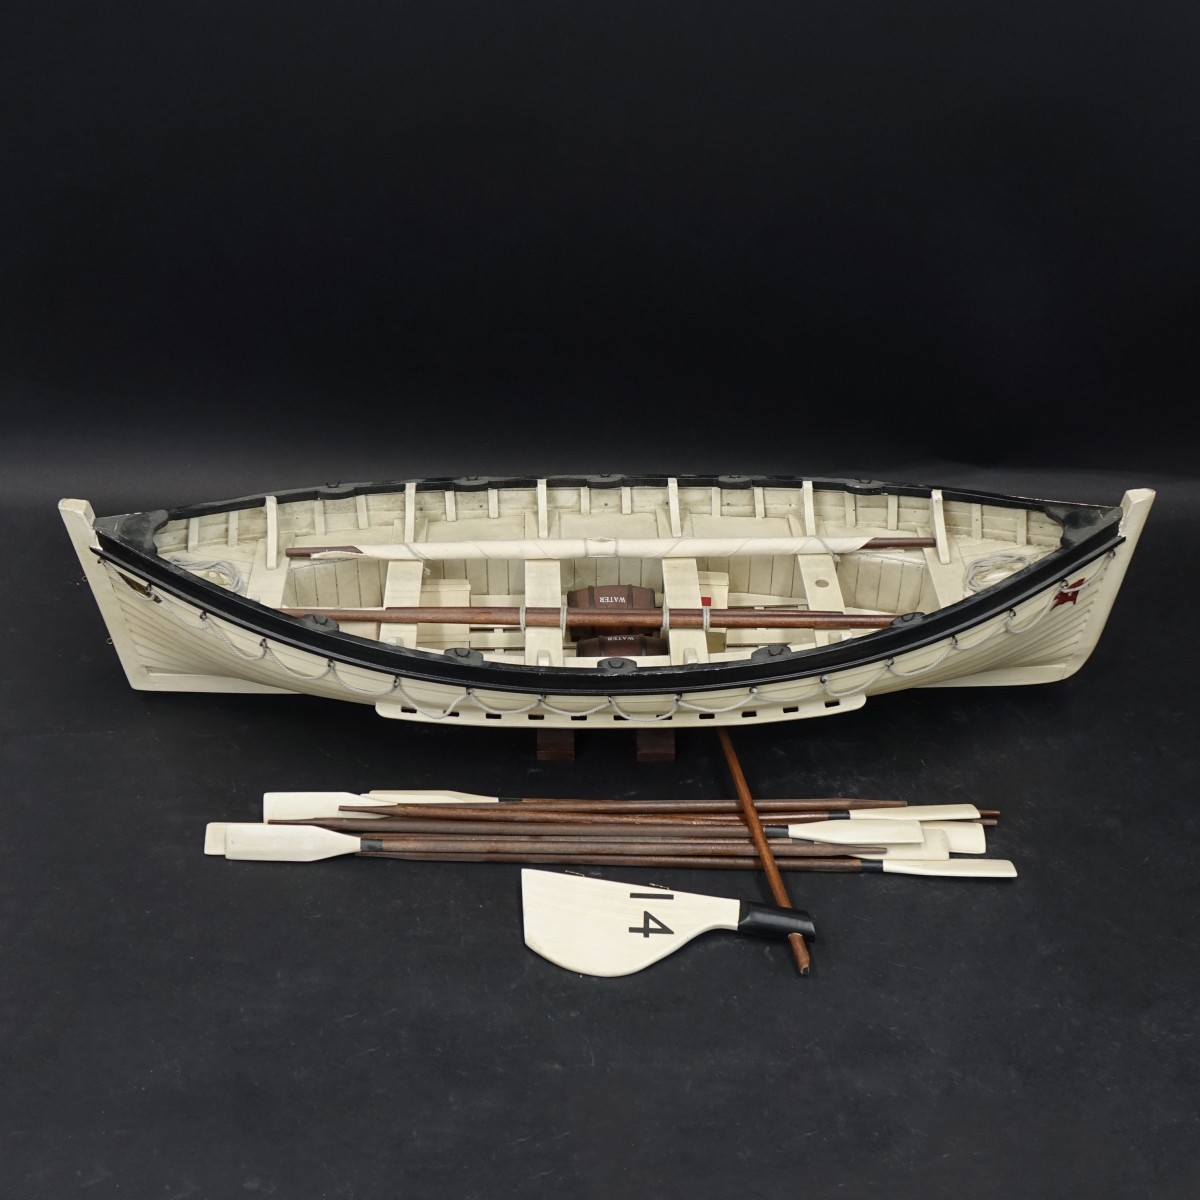 Liverpool #14 Model Row Boat